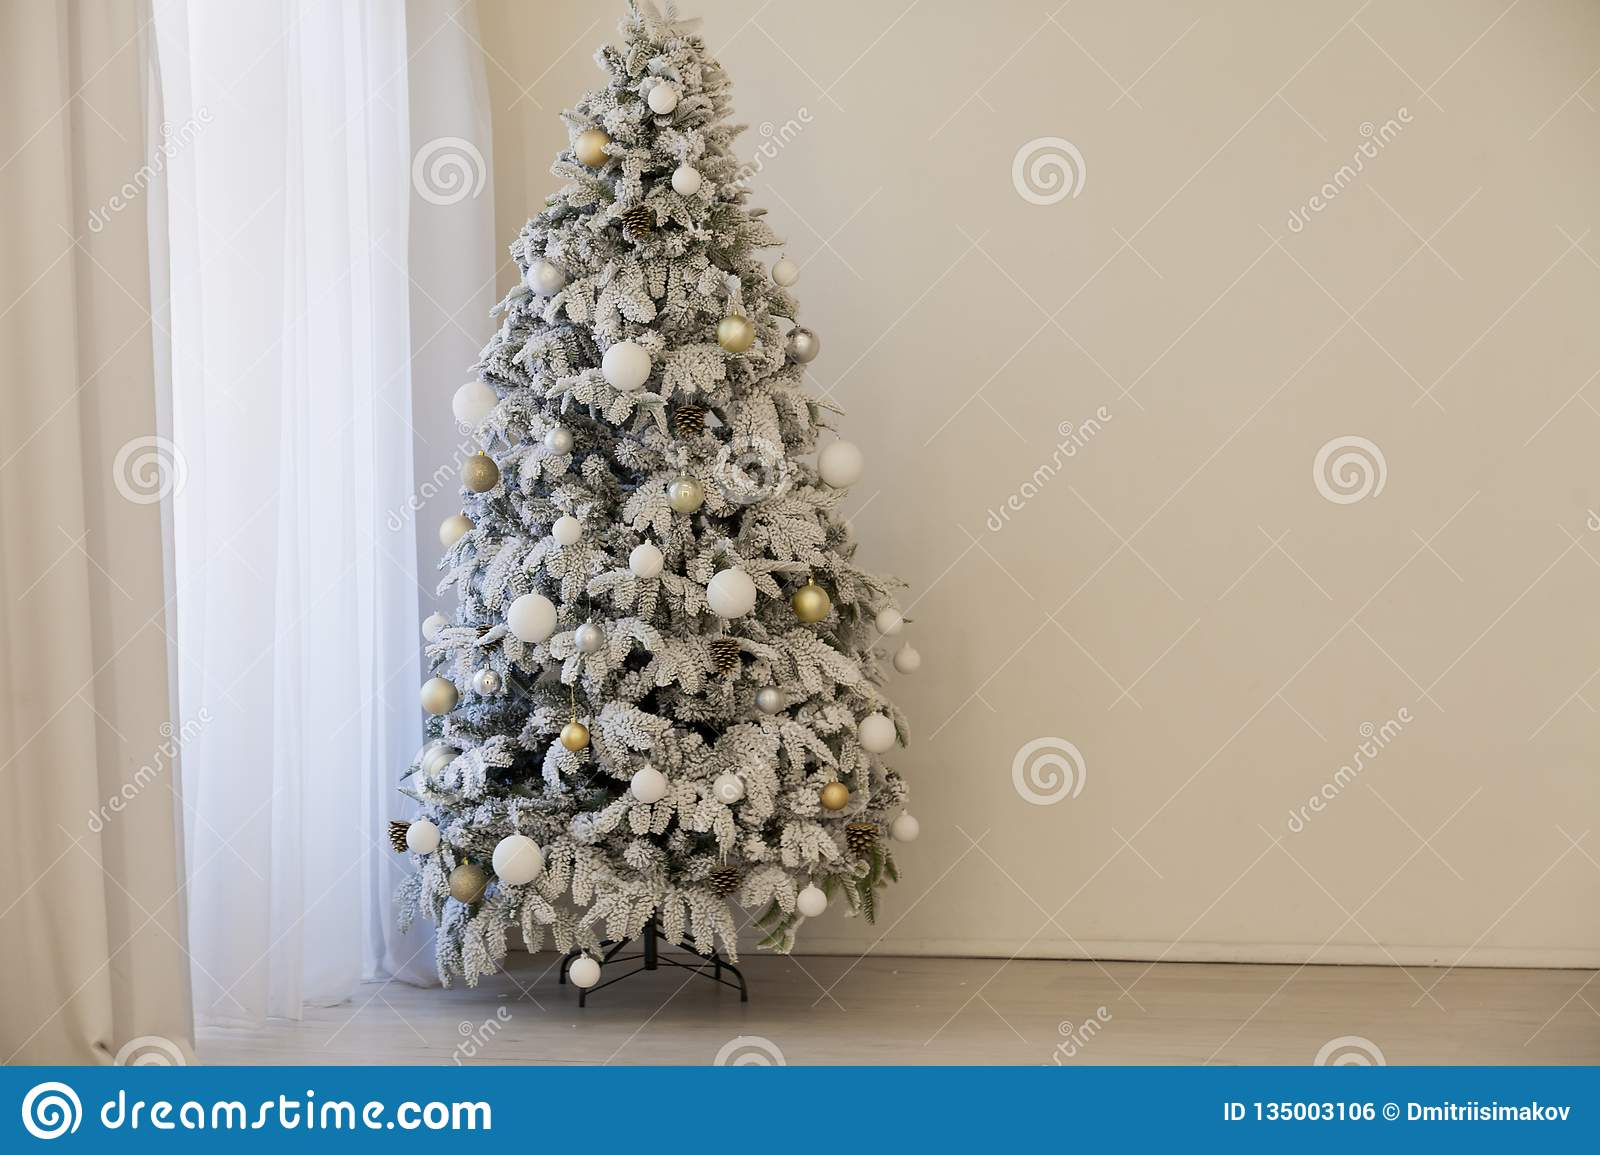 Christmas Tree With Presents, Garland Lights New Year Stock